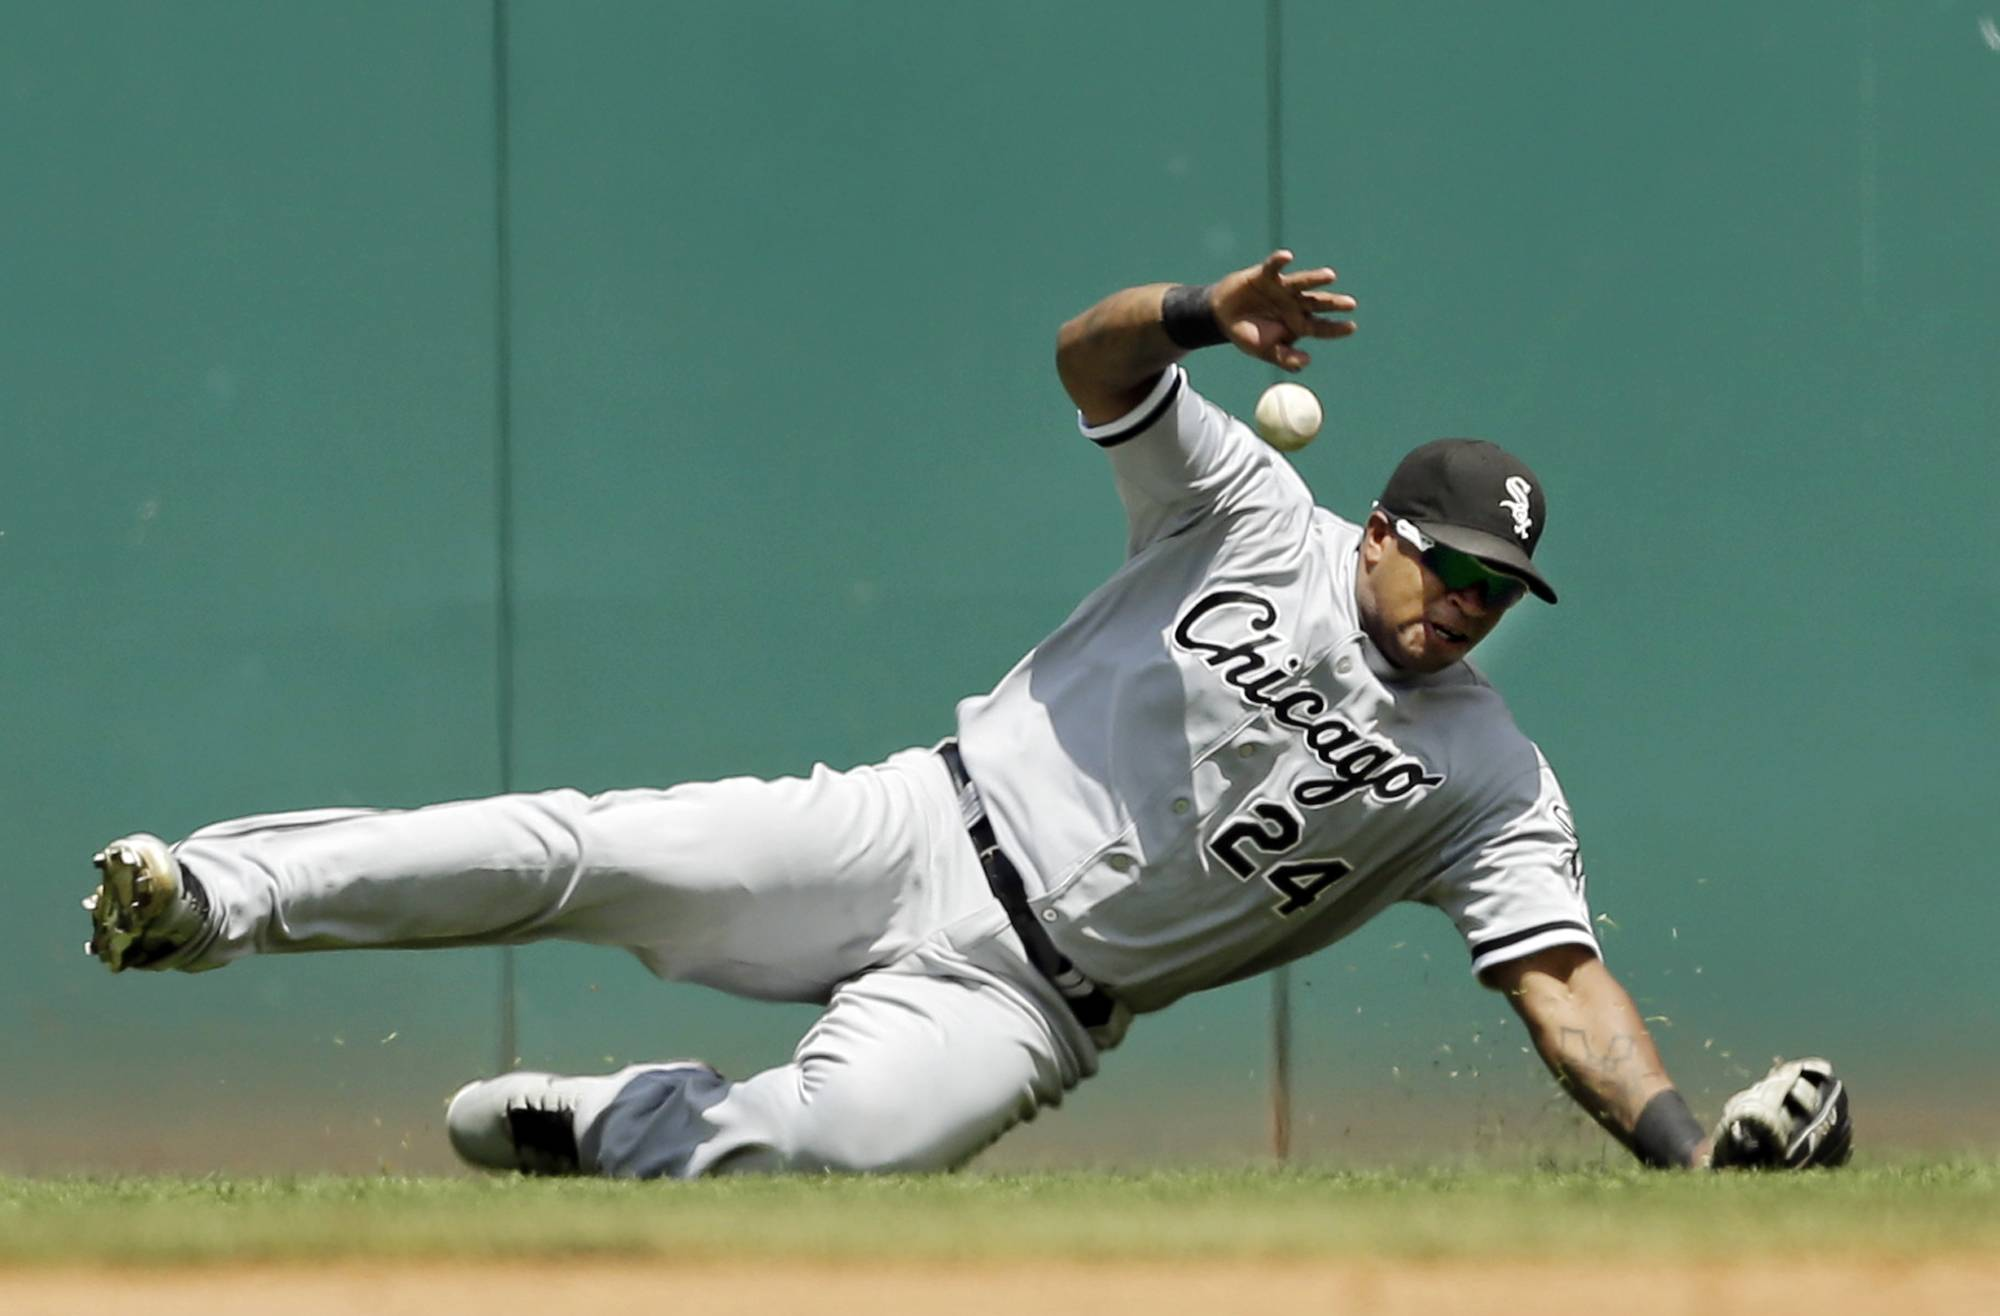 Chicago White Sox right fielder Dayan Viciedo dives for, but can't catch a line drive by Cleveland Indians' Mike Aviles that went for a double in the fourth inning of a baseball game Sunday, July 13, 2014, in Cleveland.